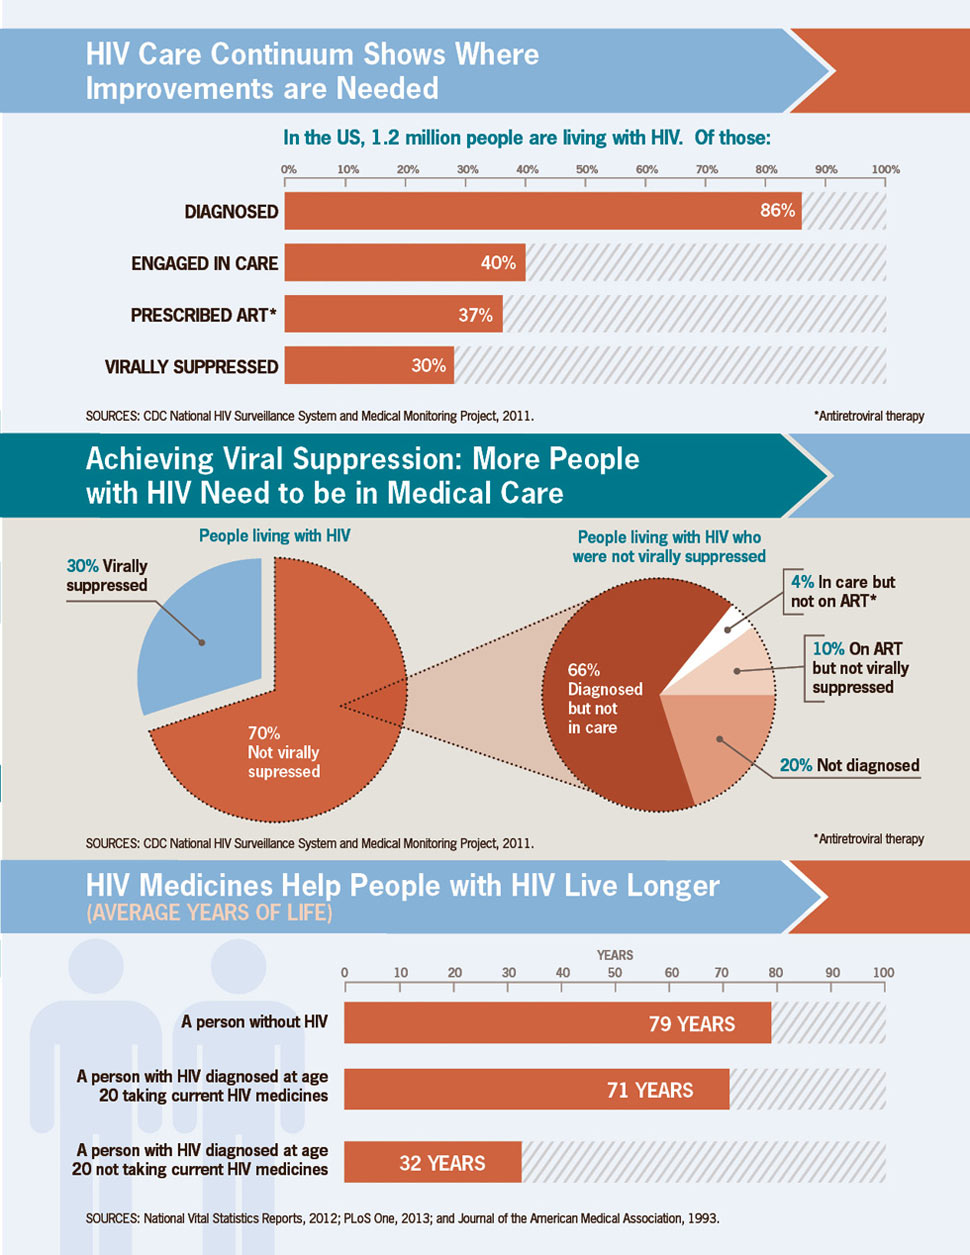 HIV care continuum shows where improvement are needed